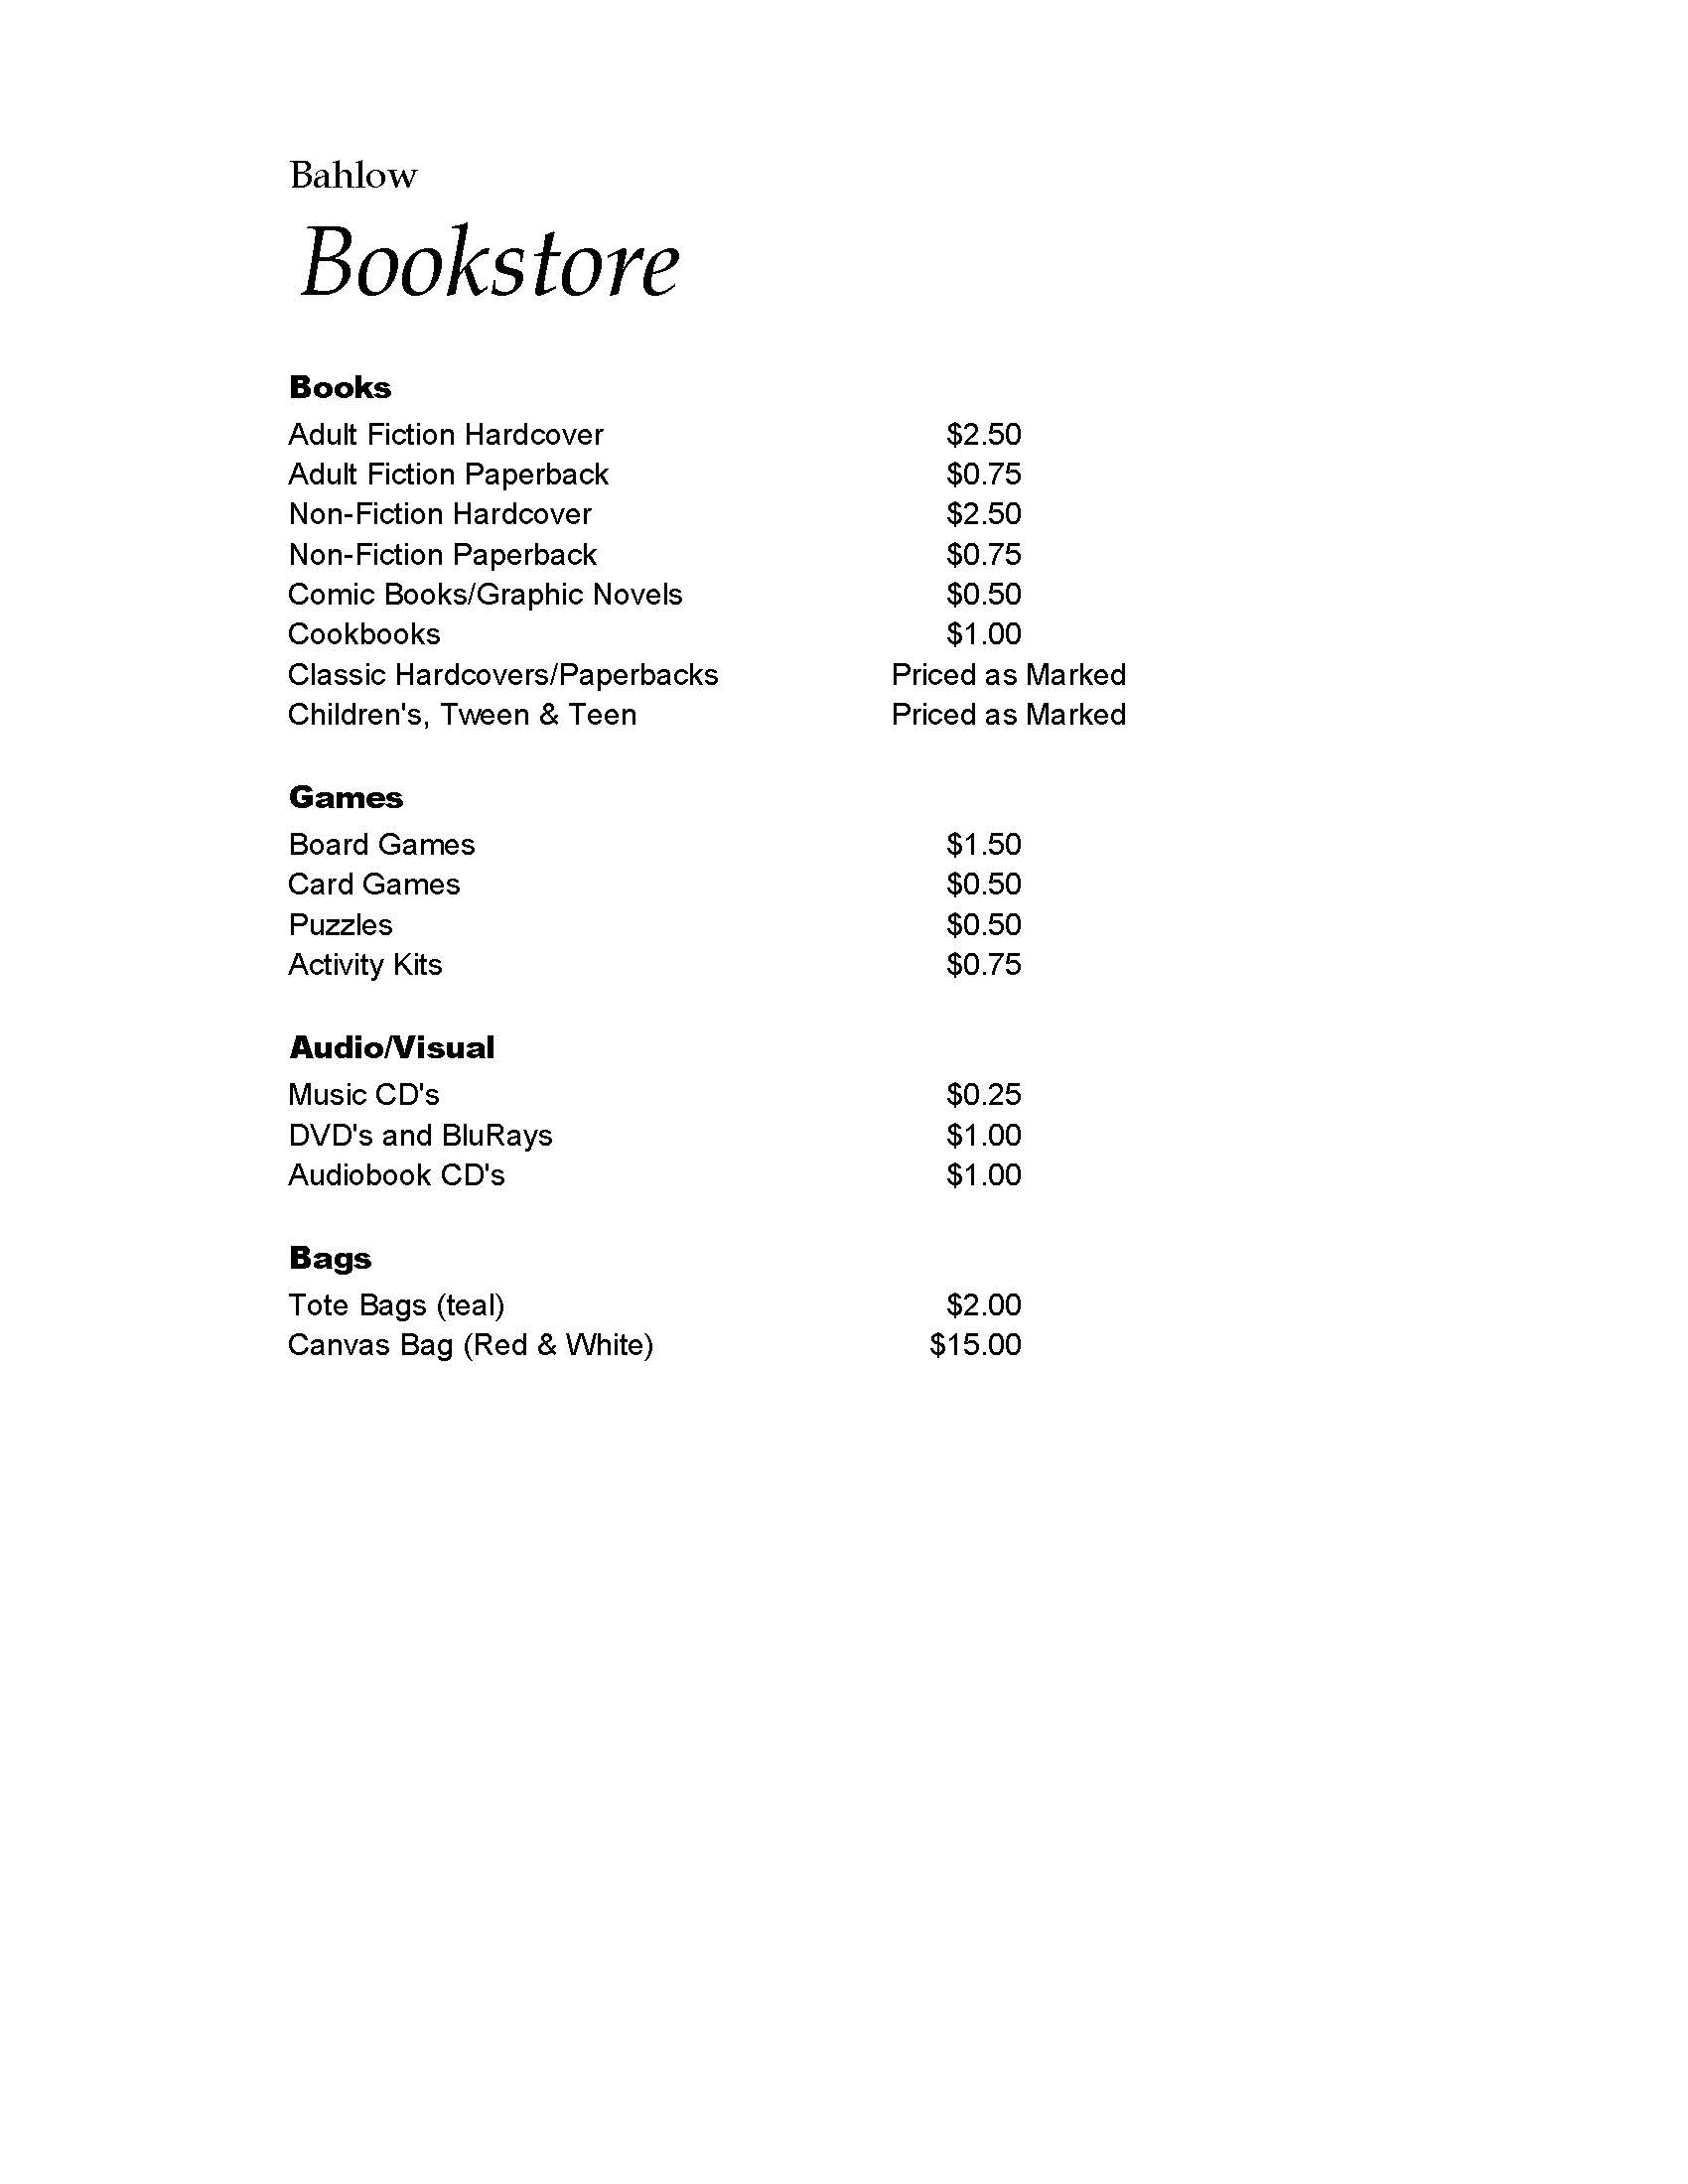 Bookstore prices